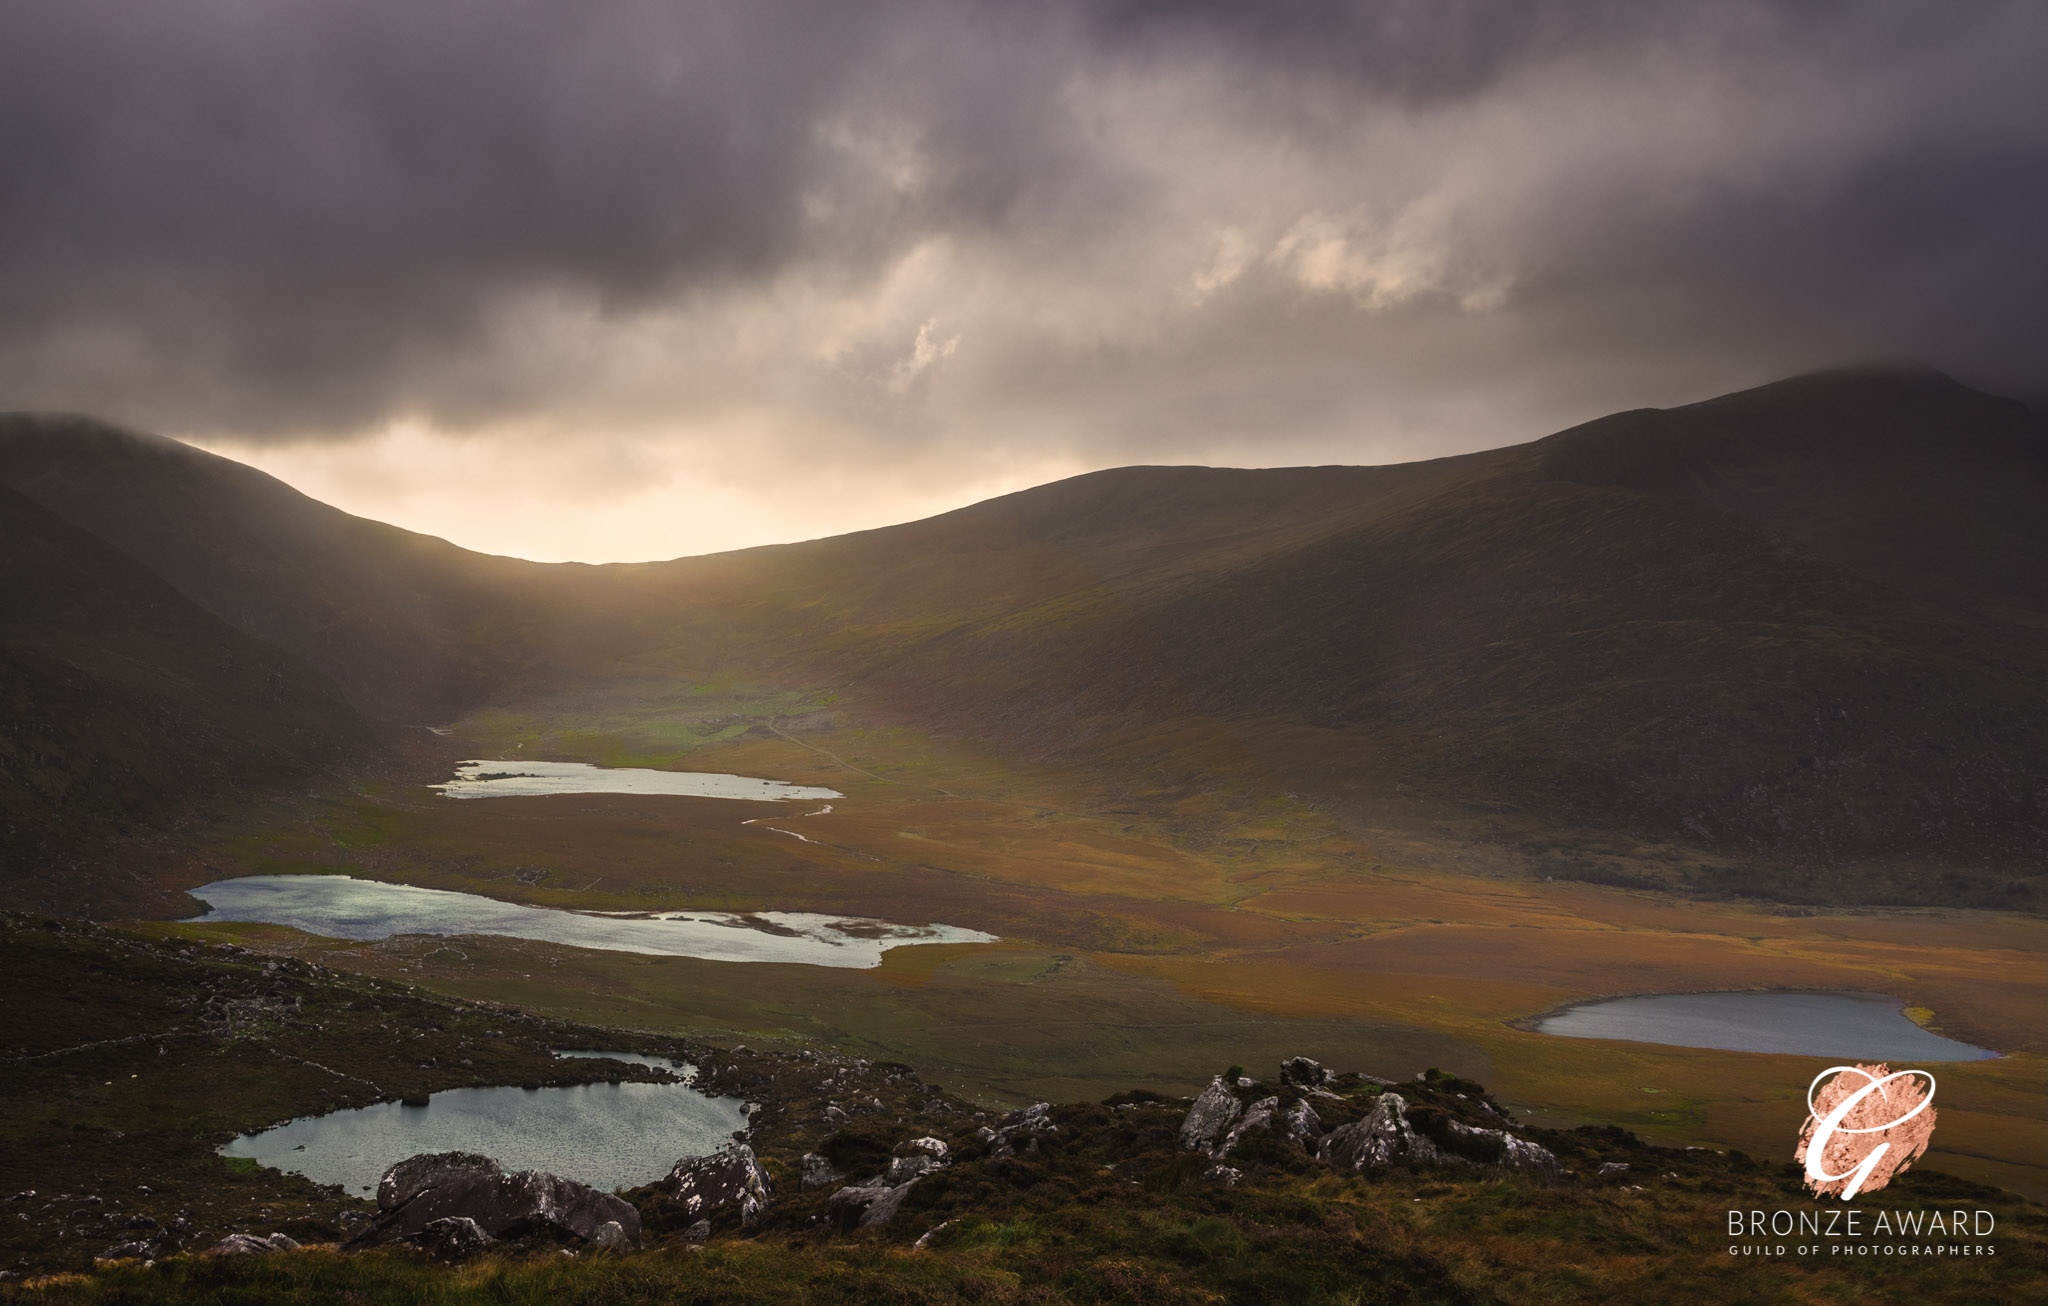 Dramatic sky and valley view over Conor Pass with autumnal colours and Lough Gal, Clogharee Lough, and Lough Atlea visible in the valley.